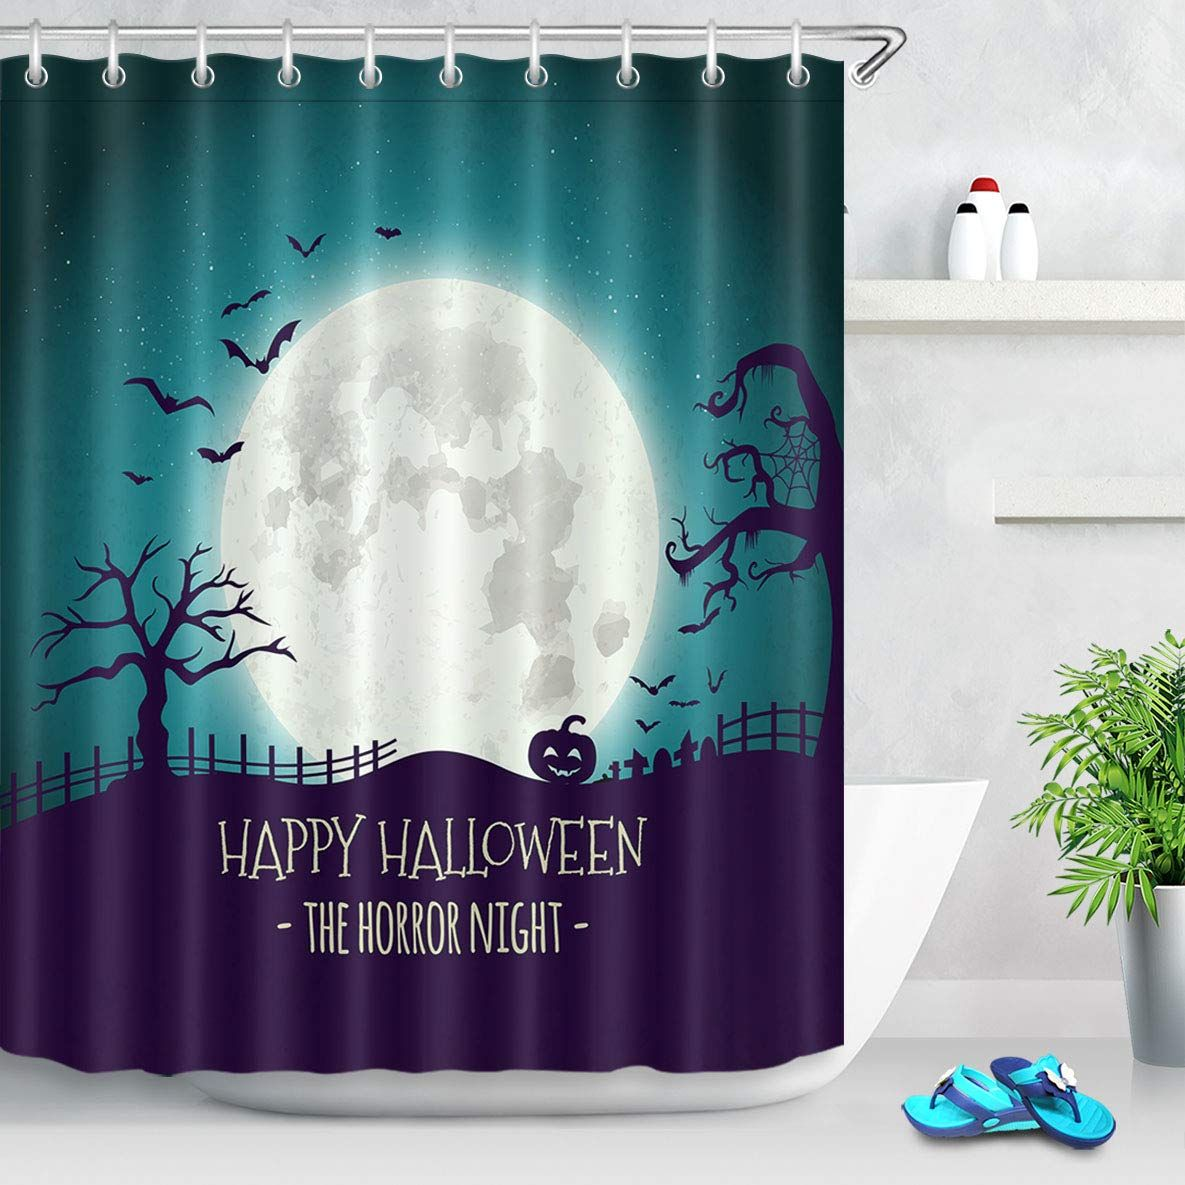 Scary Shower Curtain Scary Shower Curtains Novelty Shower